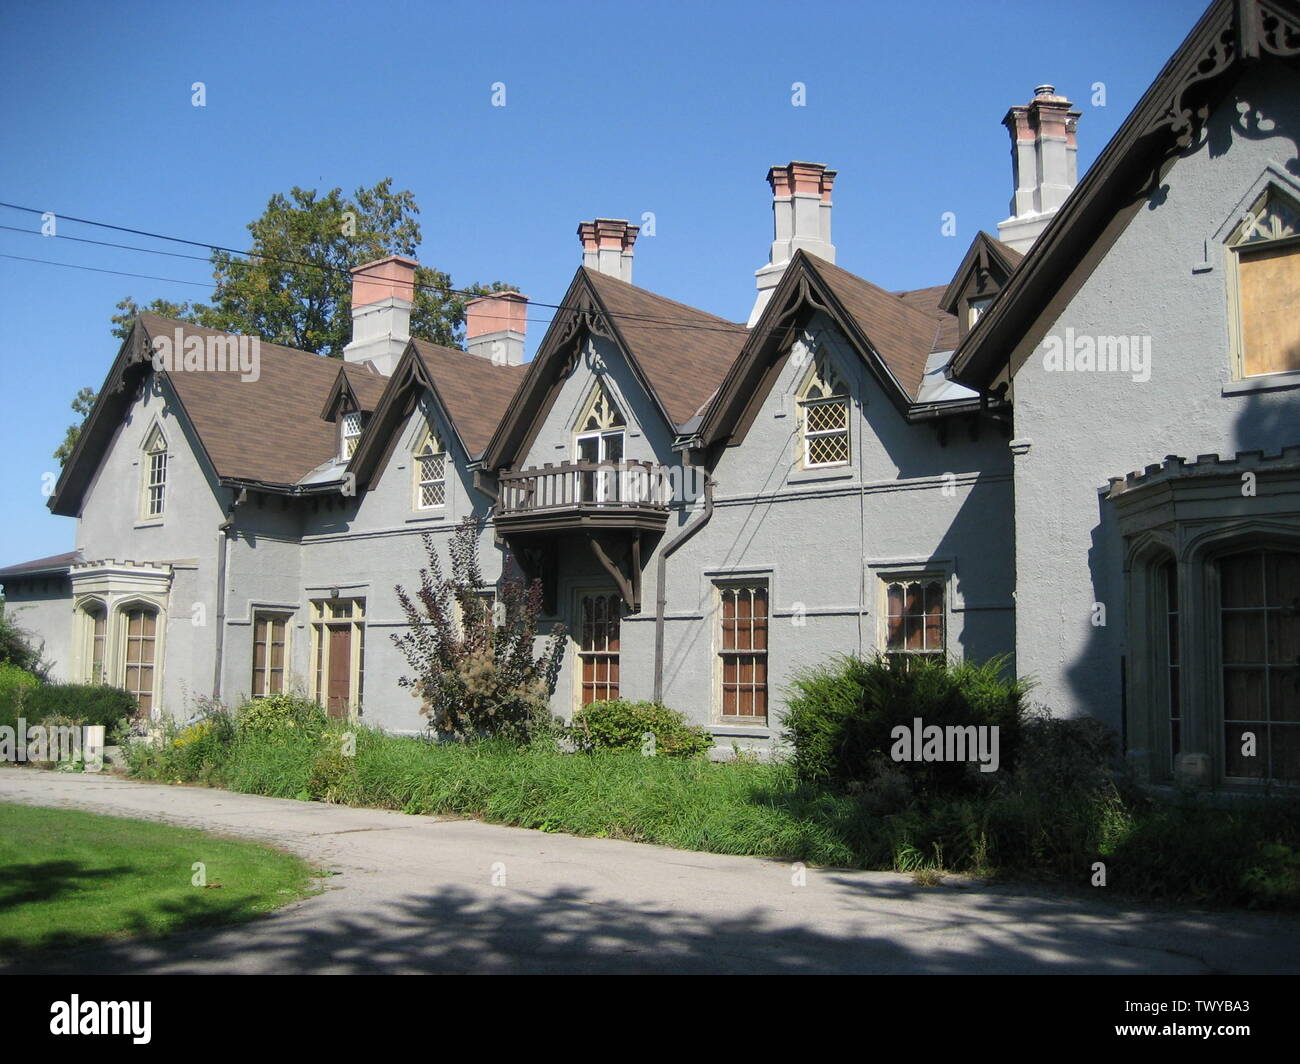 'English: Auchmar, historic site and one-time Estate of Isaac Buchanan, who founded both the Hamilton and Toronto Board of Trades, Fennell Avenue, Hamilton, Canada.; 27 September 2008; Own work (Original text:  I created this work entirely by myself.); Nhl4hamilton; ' - Stock Image